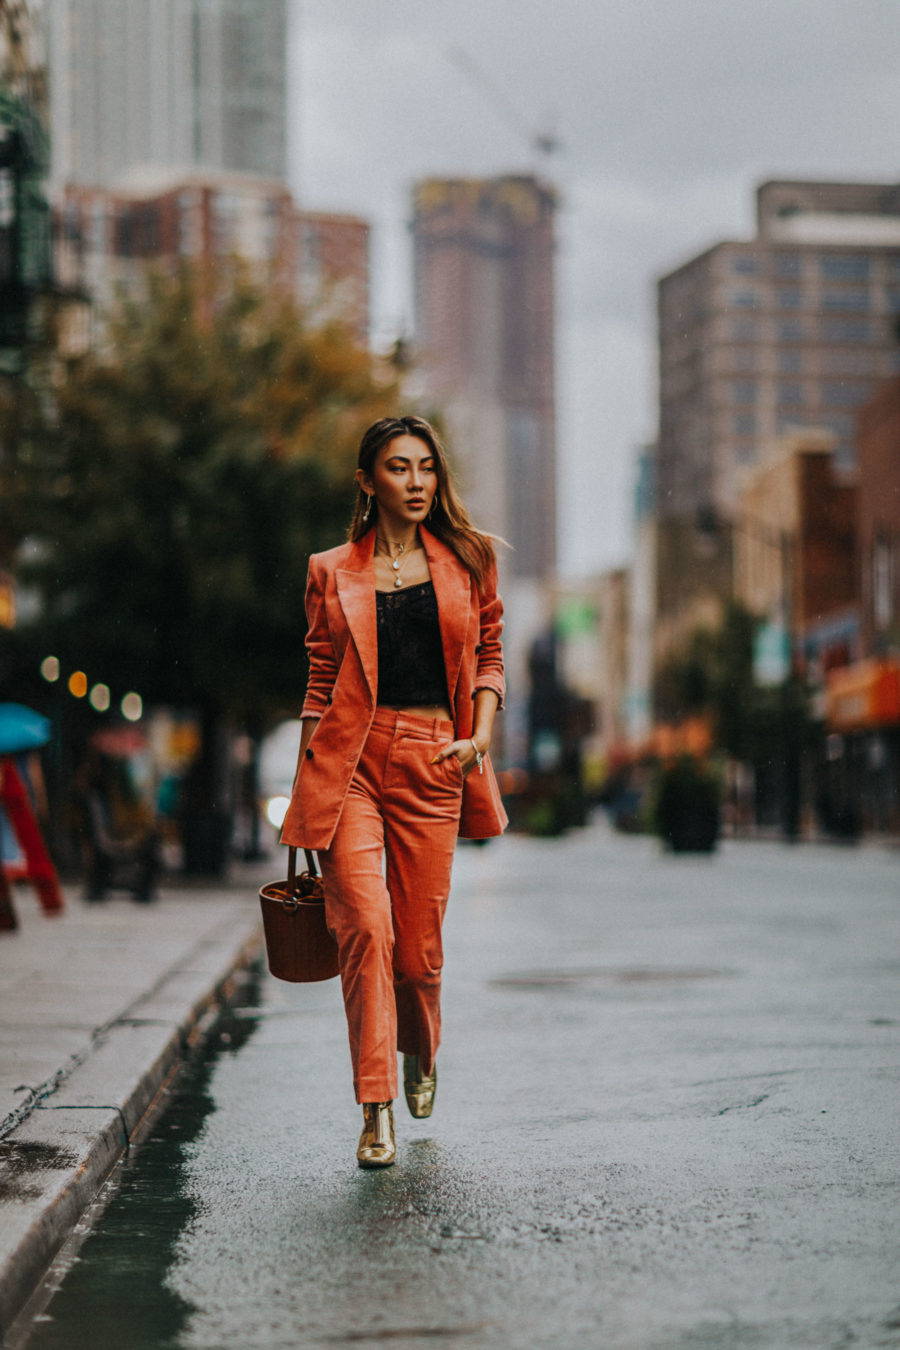 How to Wear the Corduroy Trend - & other stories corduroy suit, gold boots, meli melo bag // Notjessfashion.com